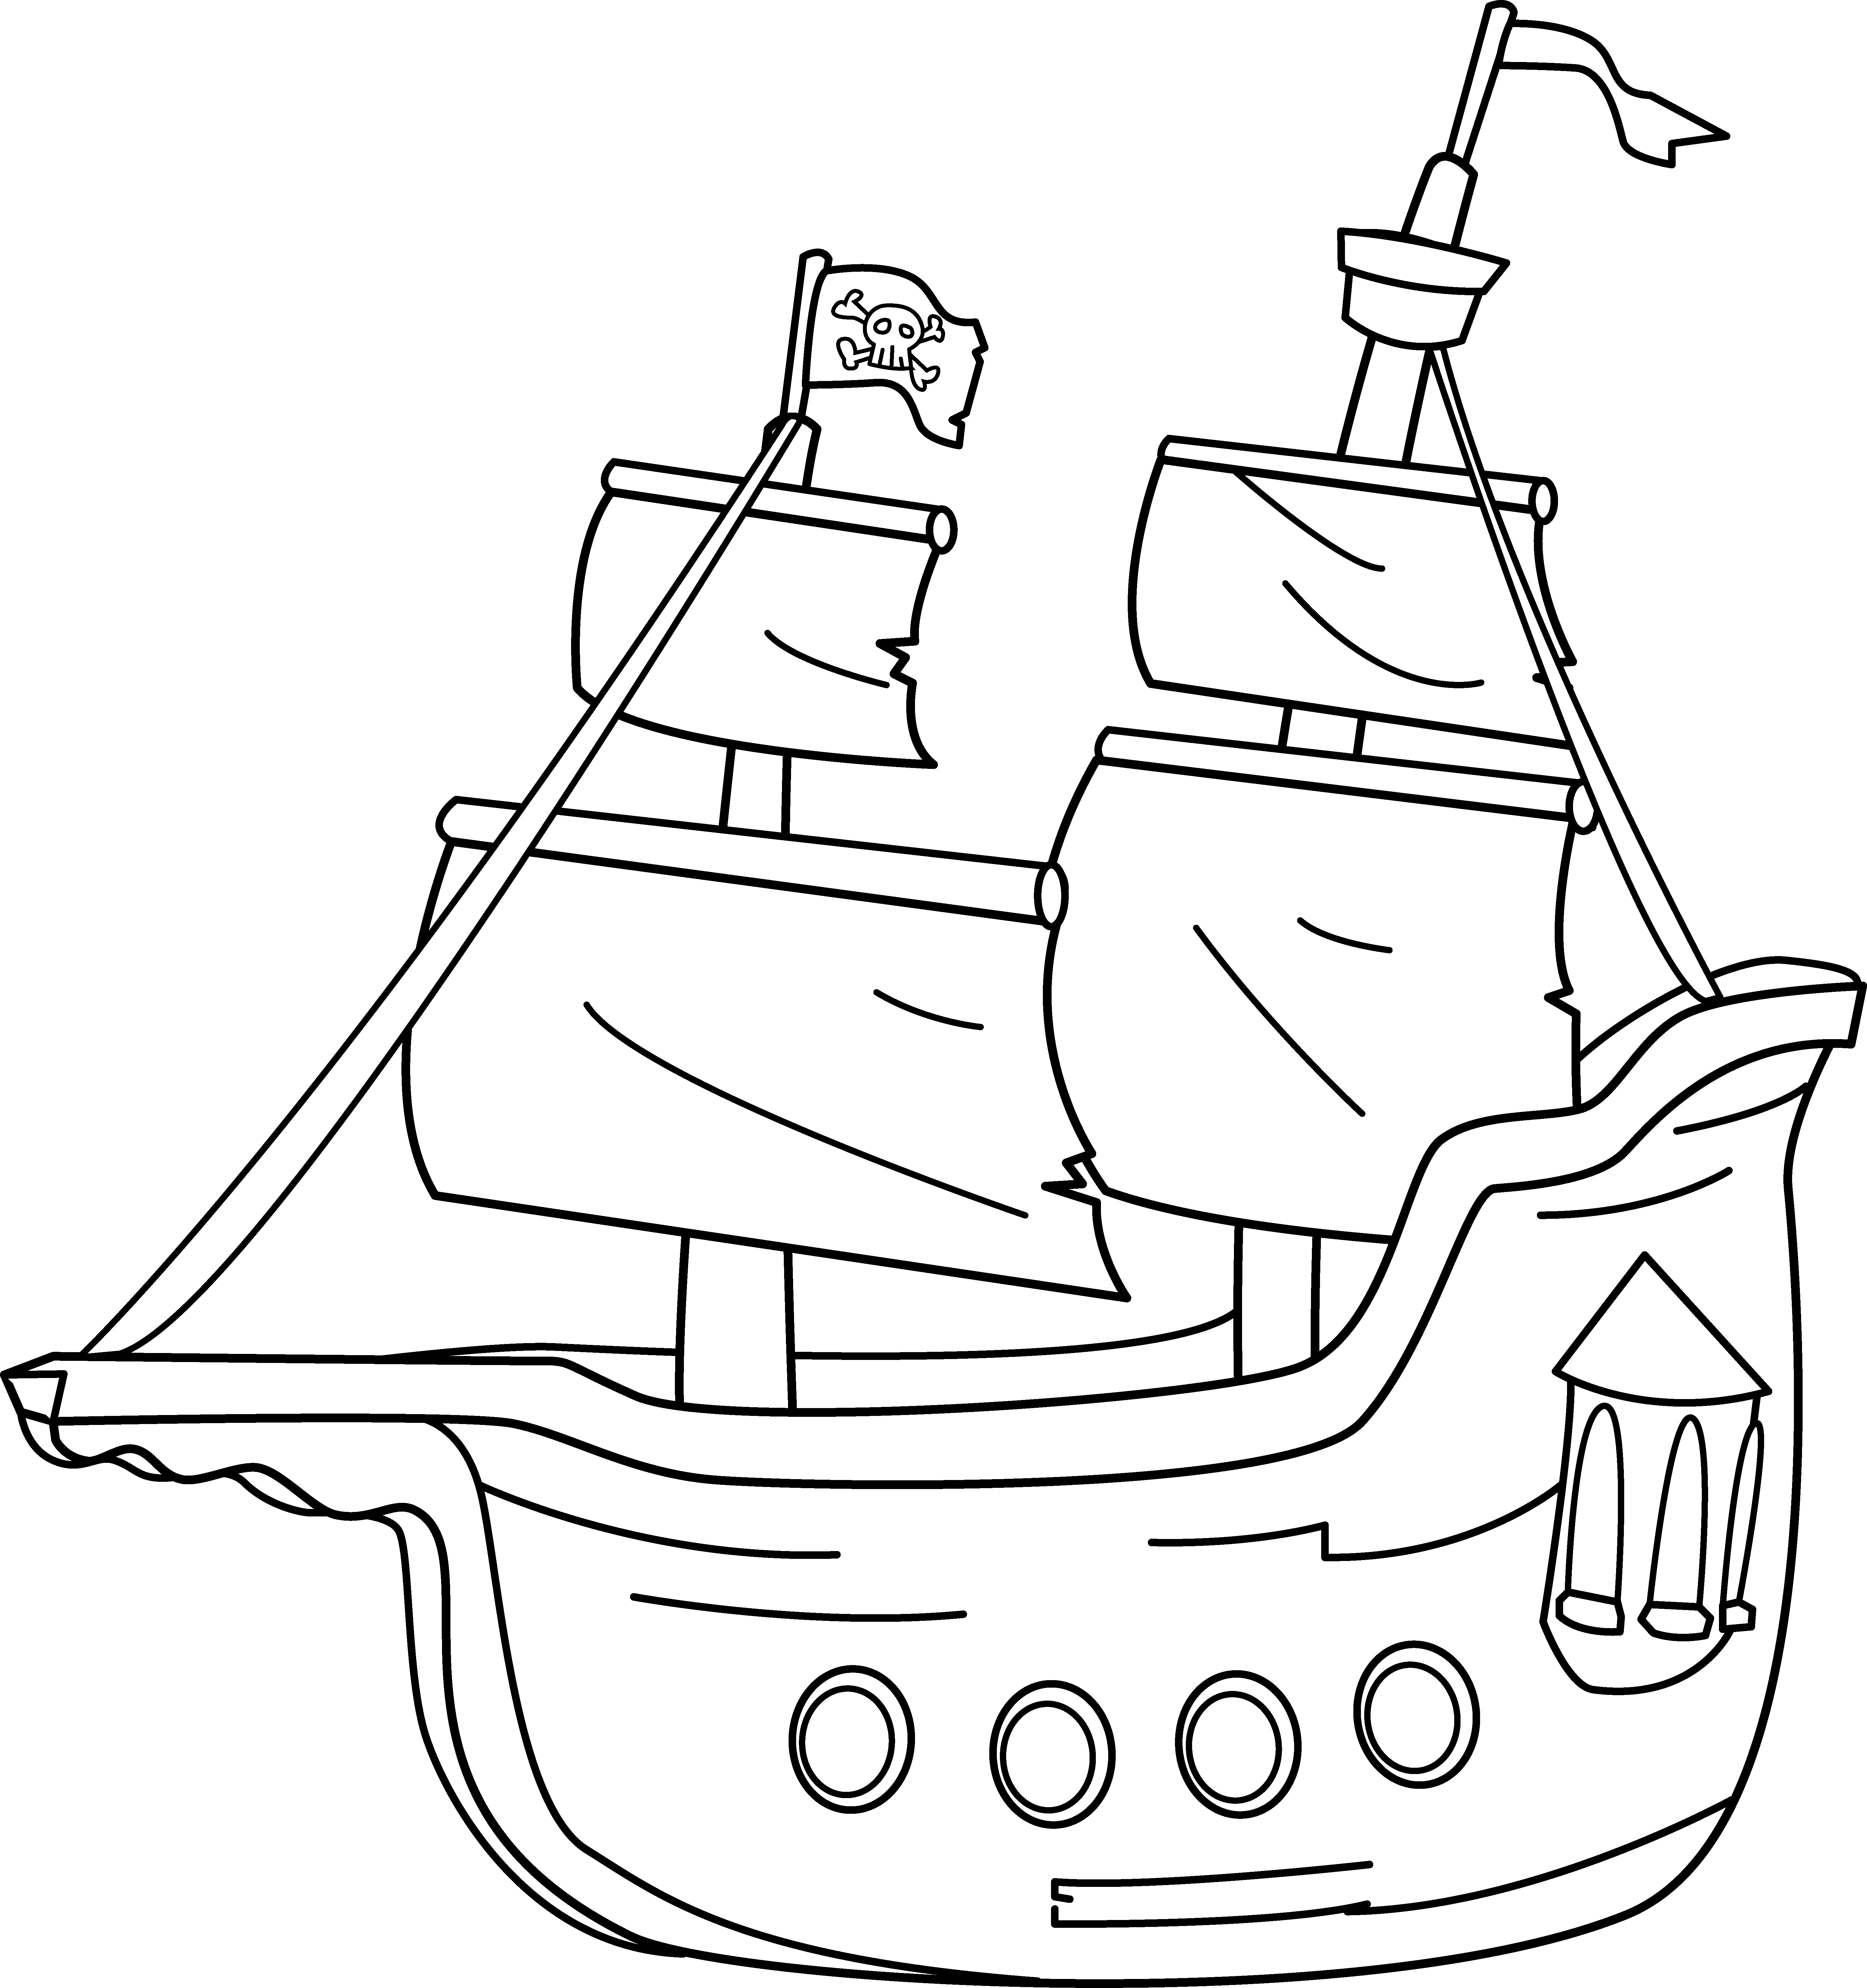 pirate ship to color pirate ship coloring page free clip art ship to color pirate